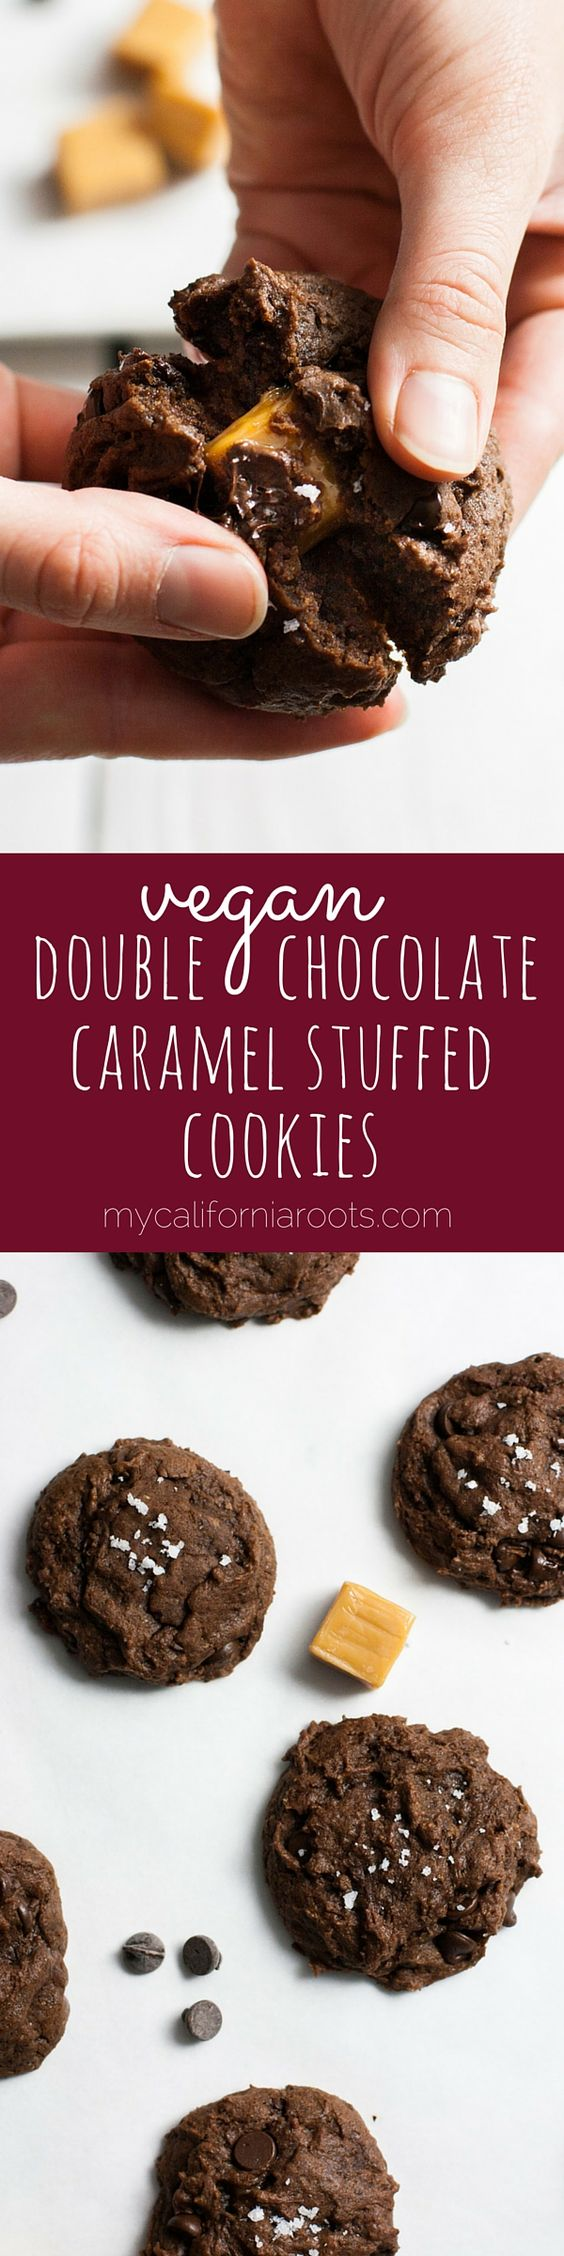 Vegan Caramel-Stuffed Double Chocolate cookies for the win!! Sprinkled with sea salt. I ate half the batch all by myself - I couldn't stop! These are my new favorite cookie.